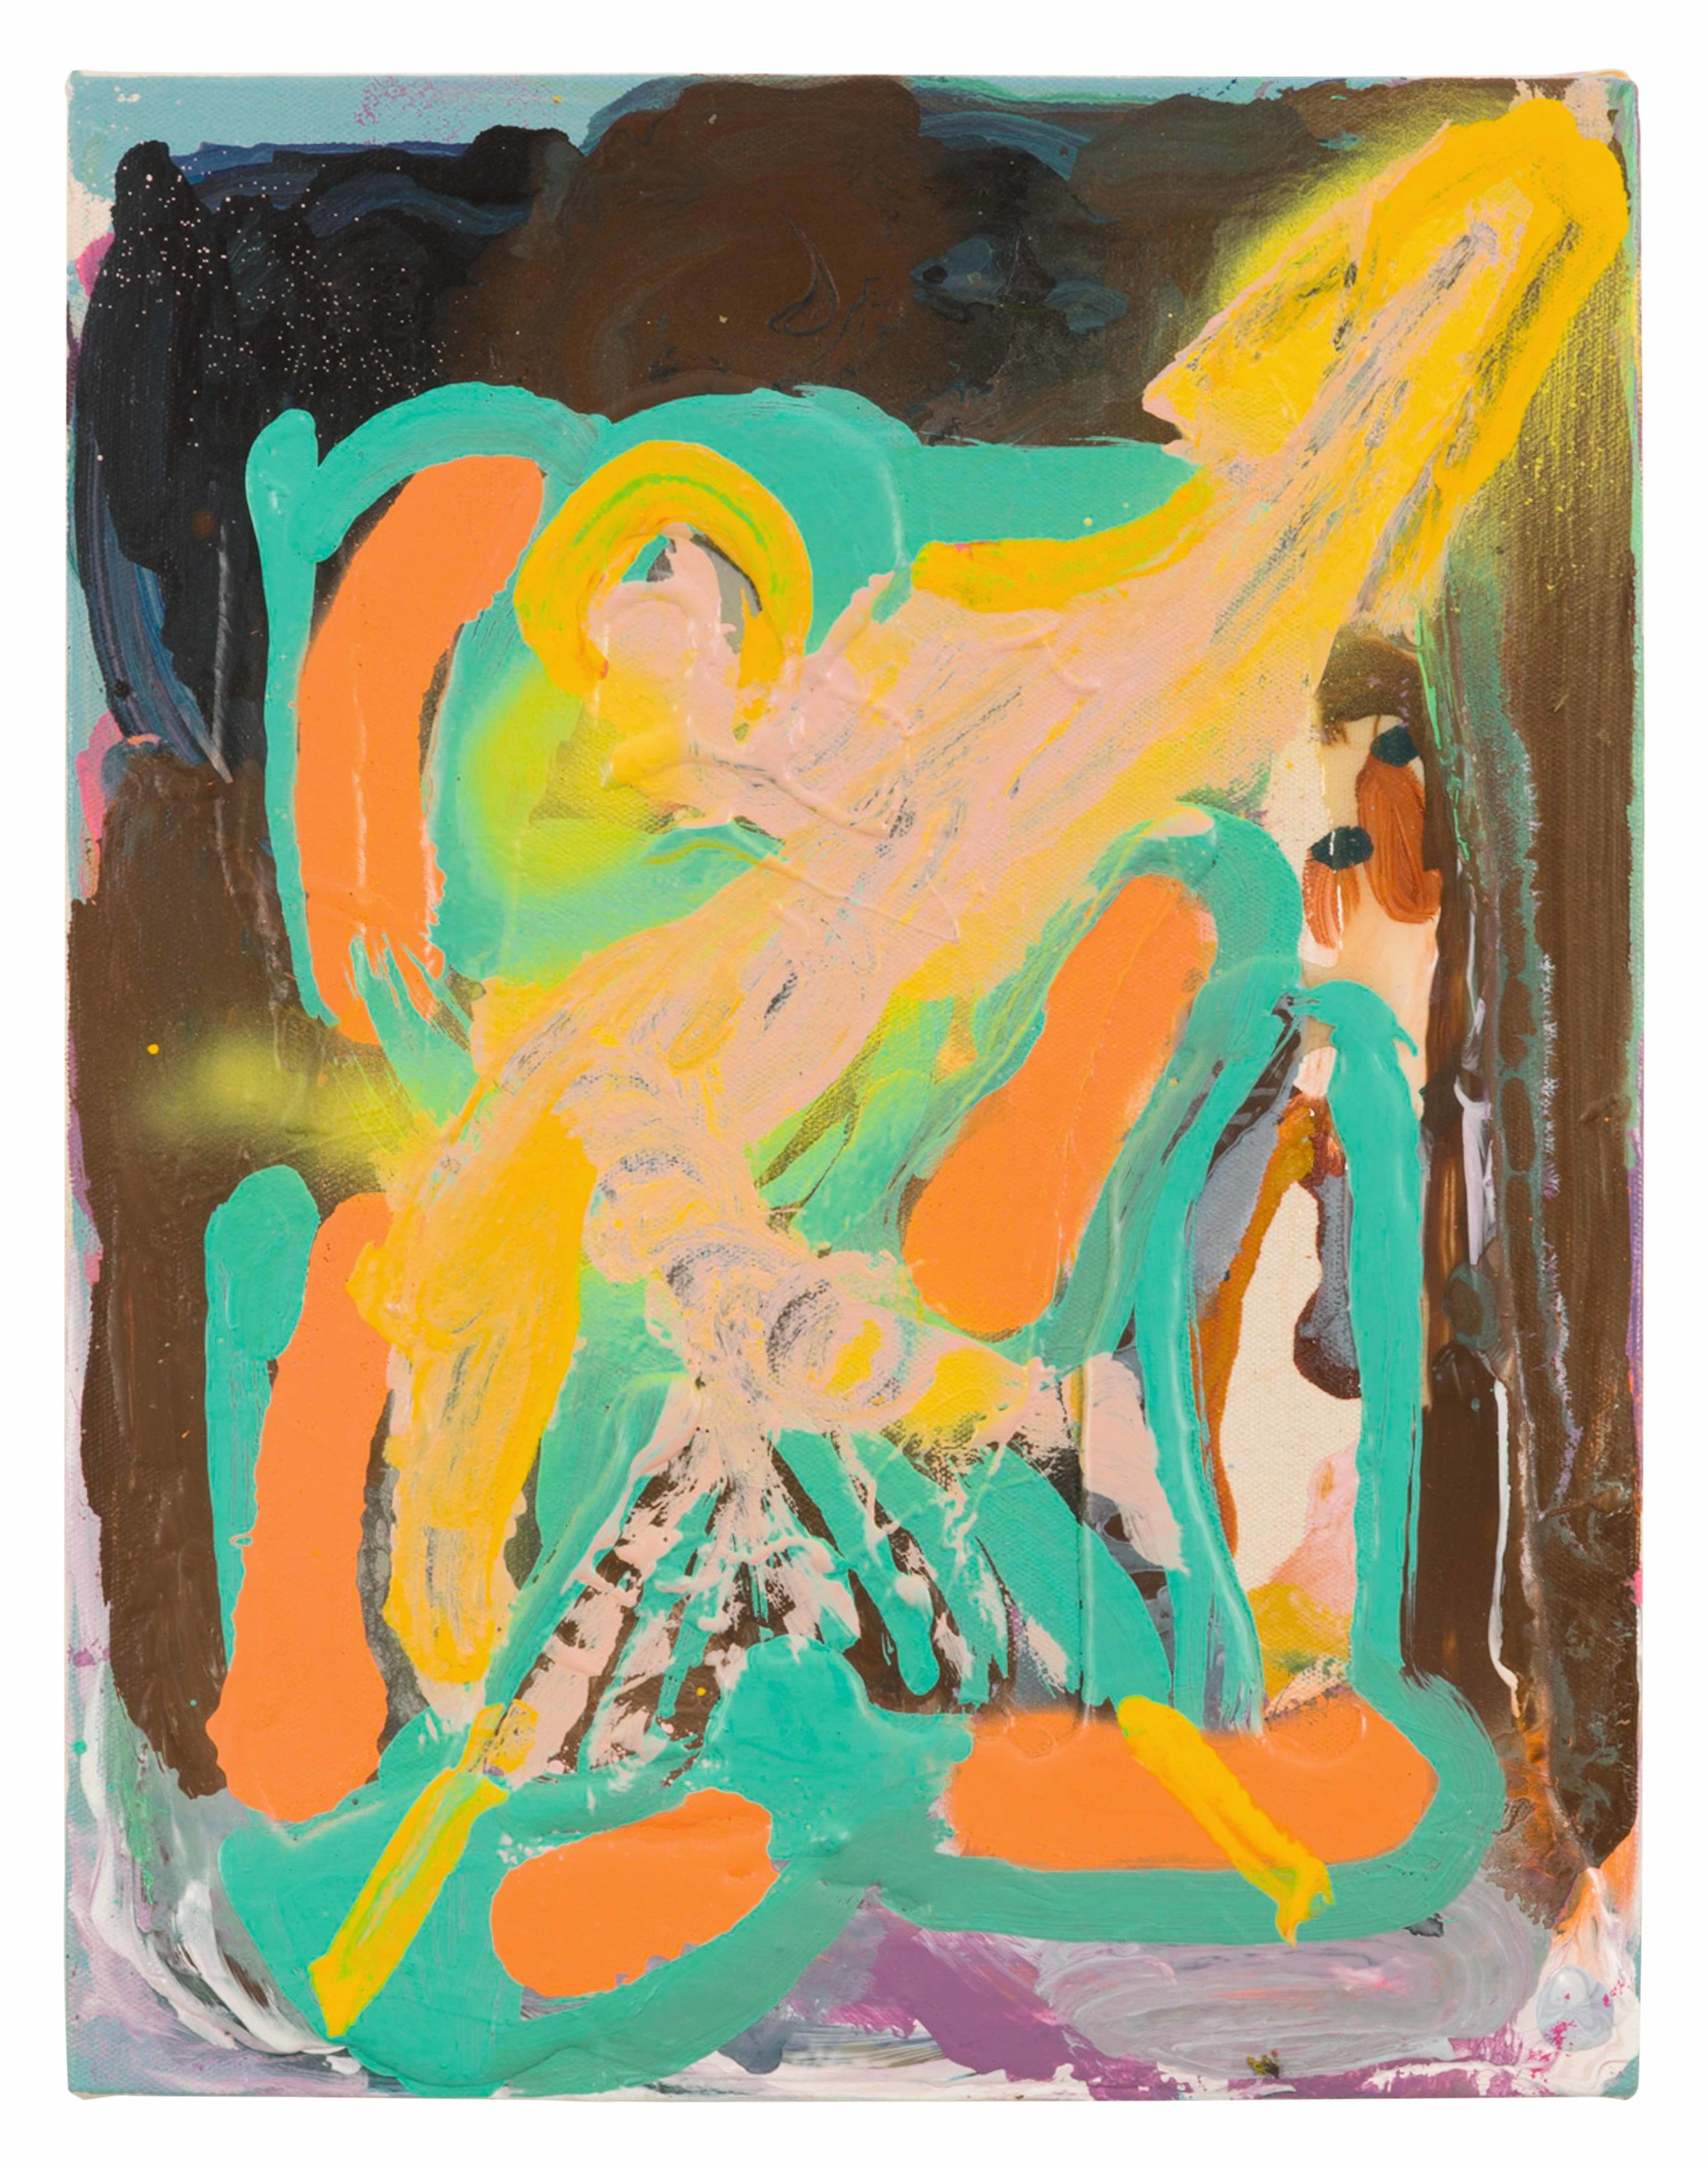 Drew Beattie and Ben Shepard  Diagonal Morning  2015 acrylic and synthetic resin on canvas 14 x 11 inches